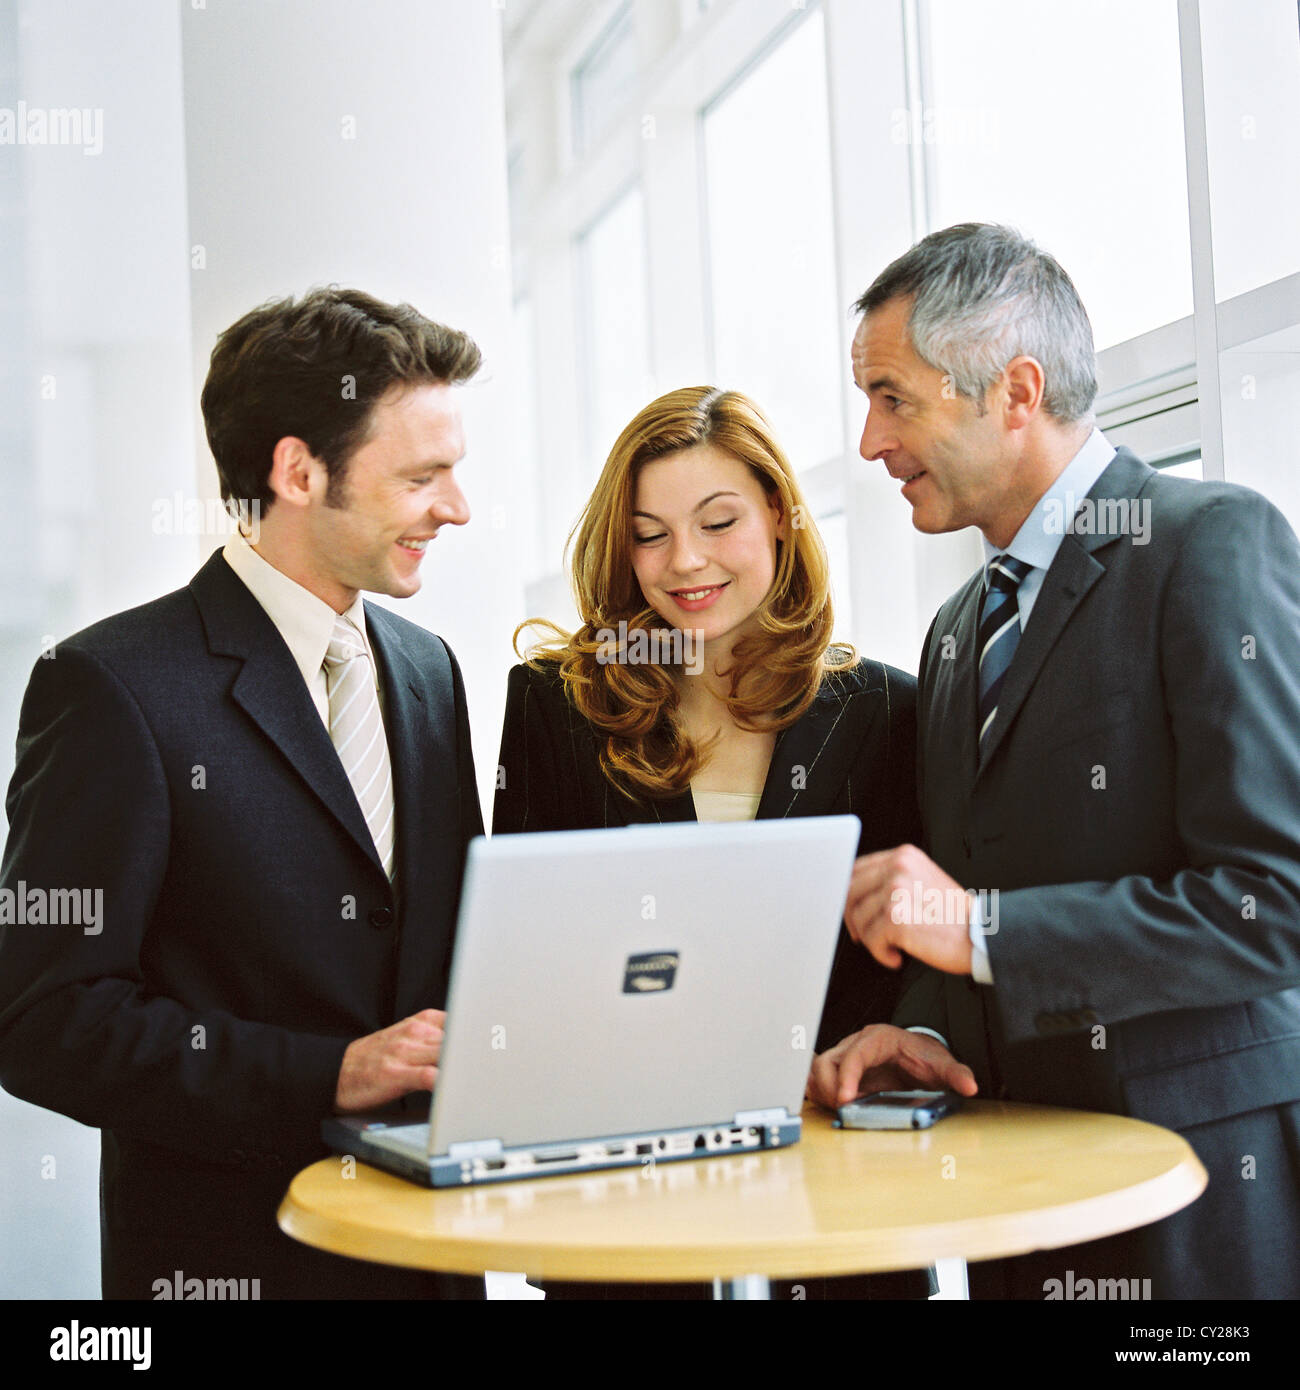 business people man woman confidence cooperation laptop notebook License free except ads and outdoor billboards - Stock Image